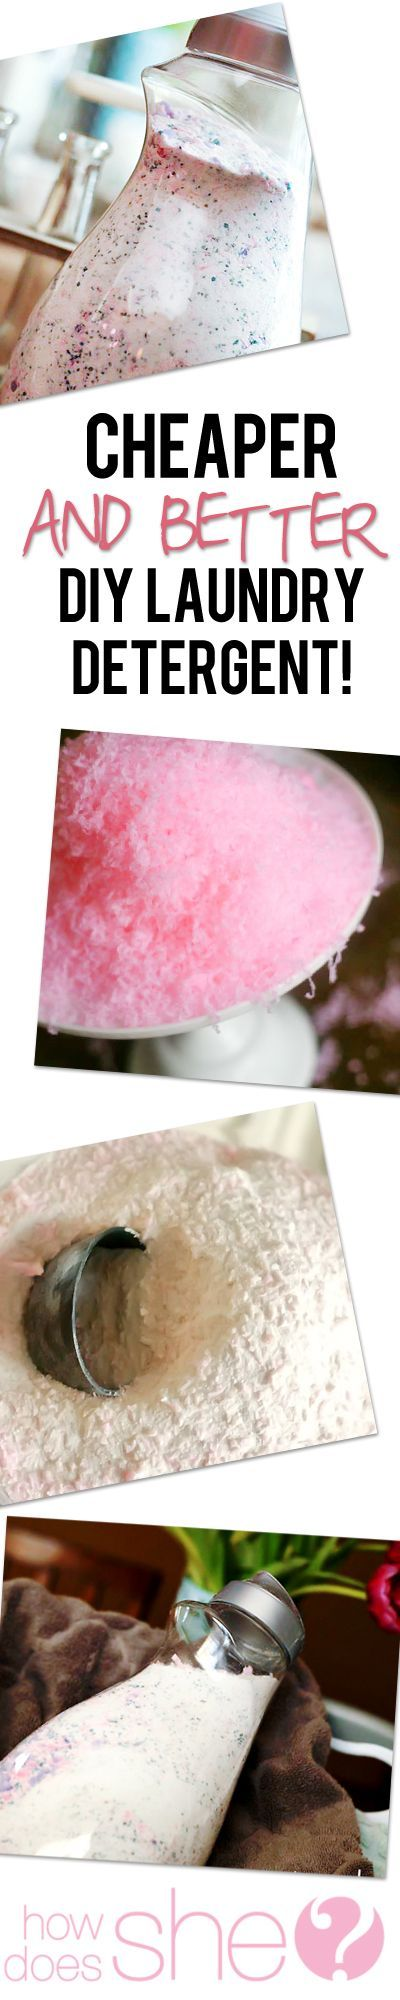 Cheaper AND Better! DIY Laundry Detergent that smells like HEAVEN!